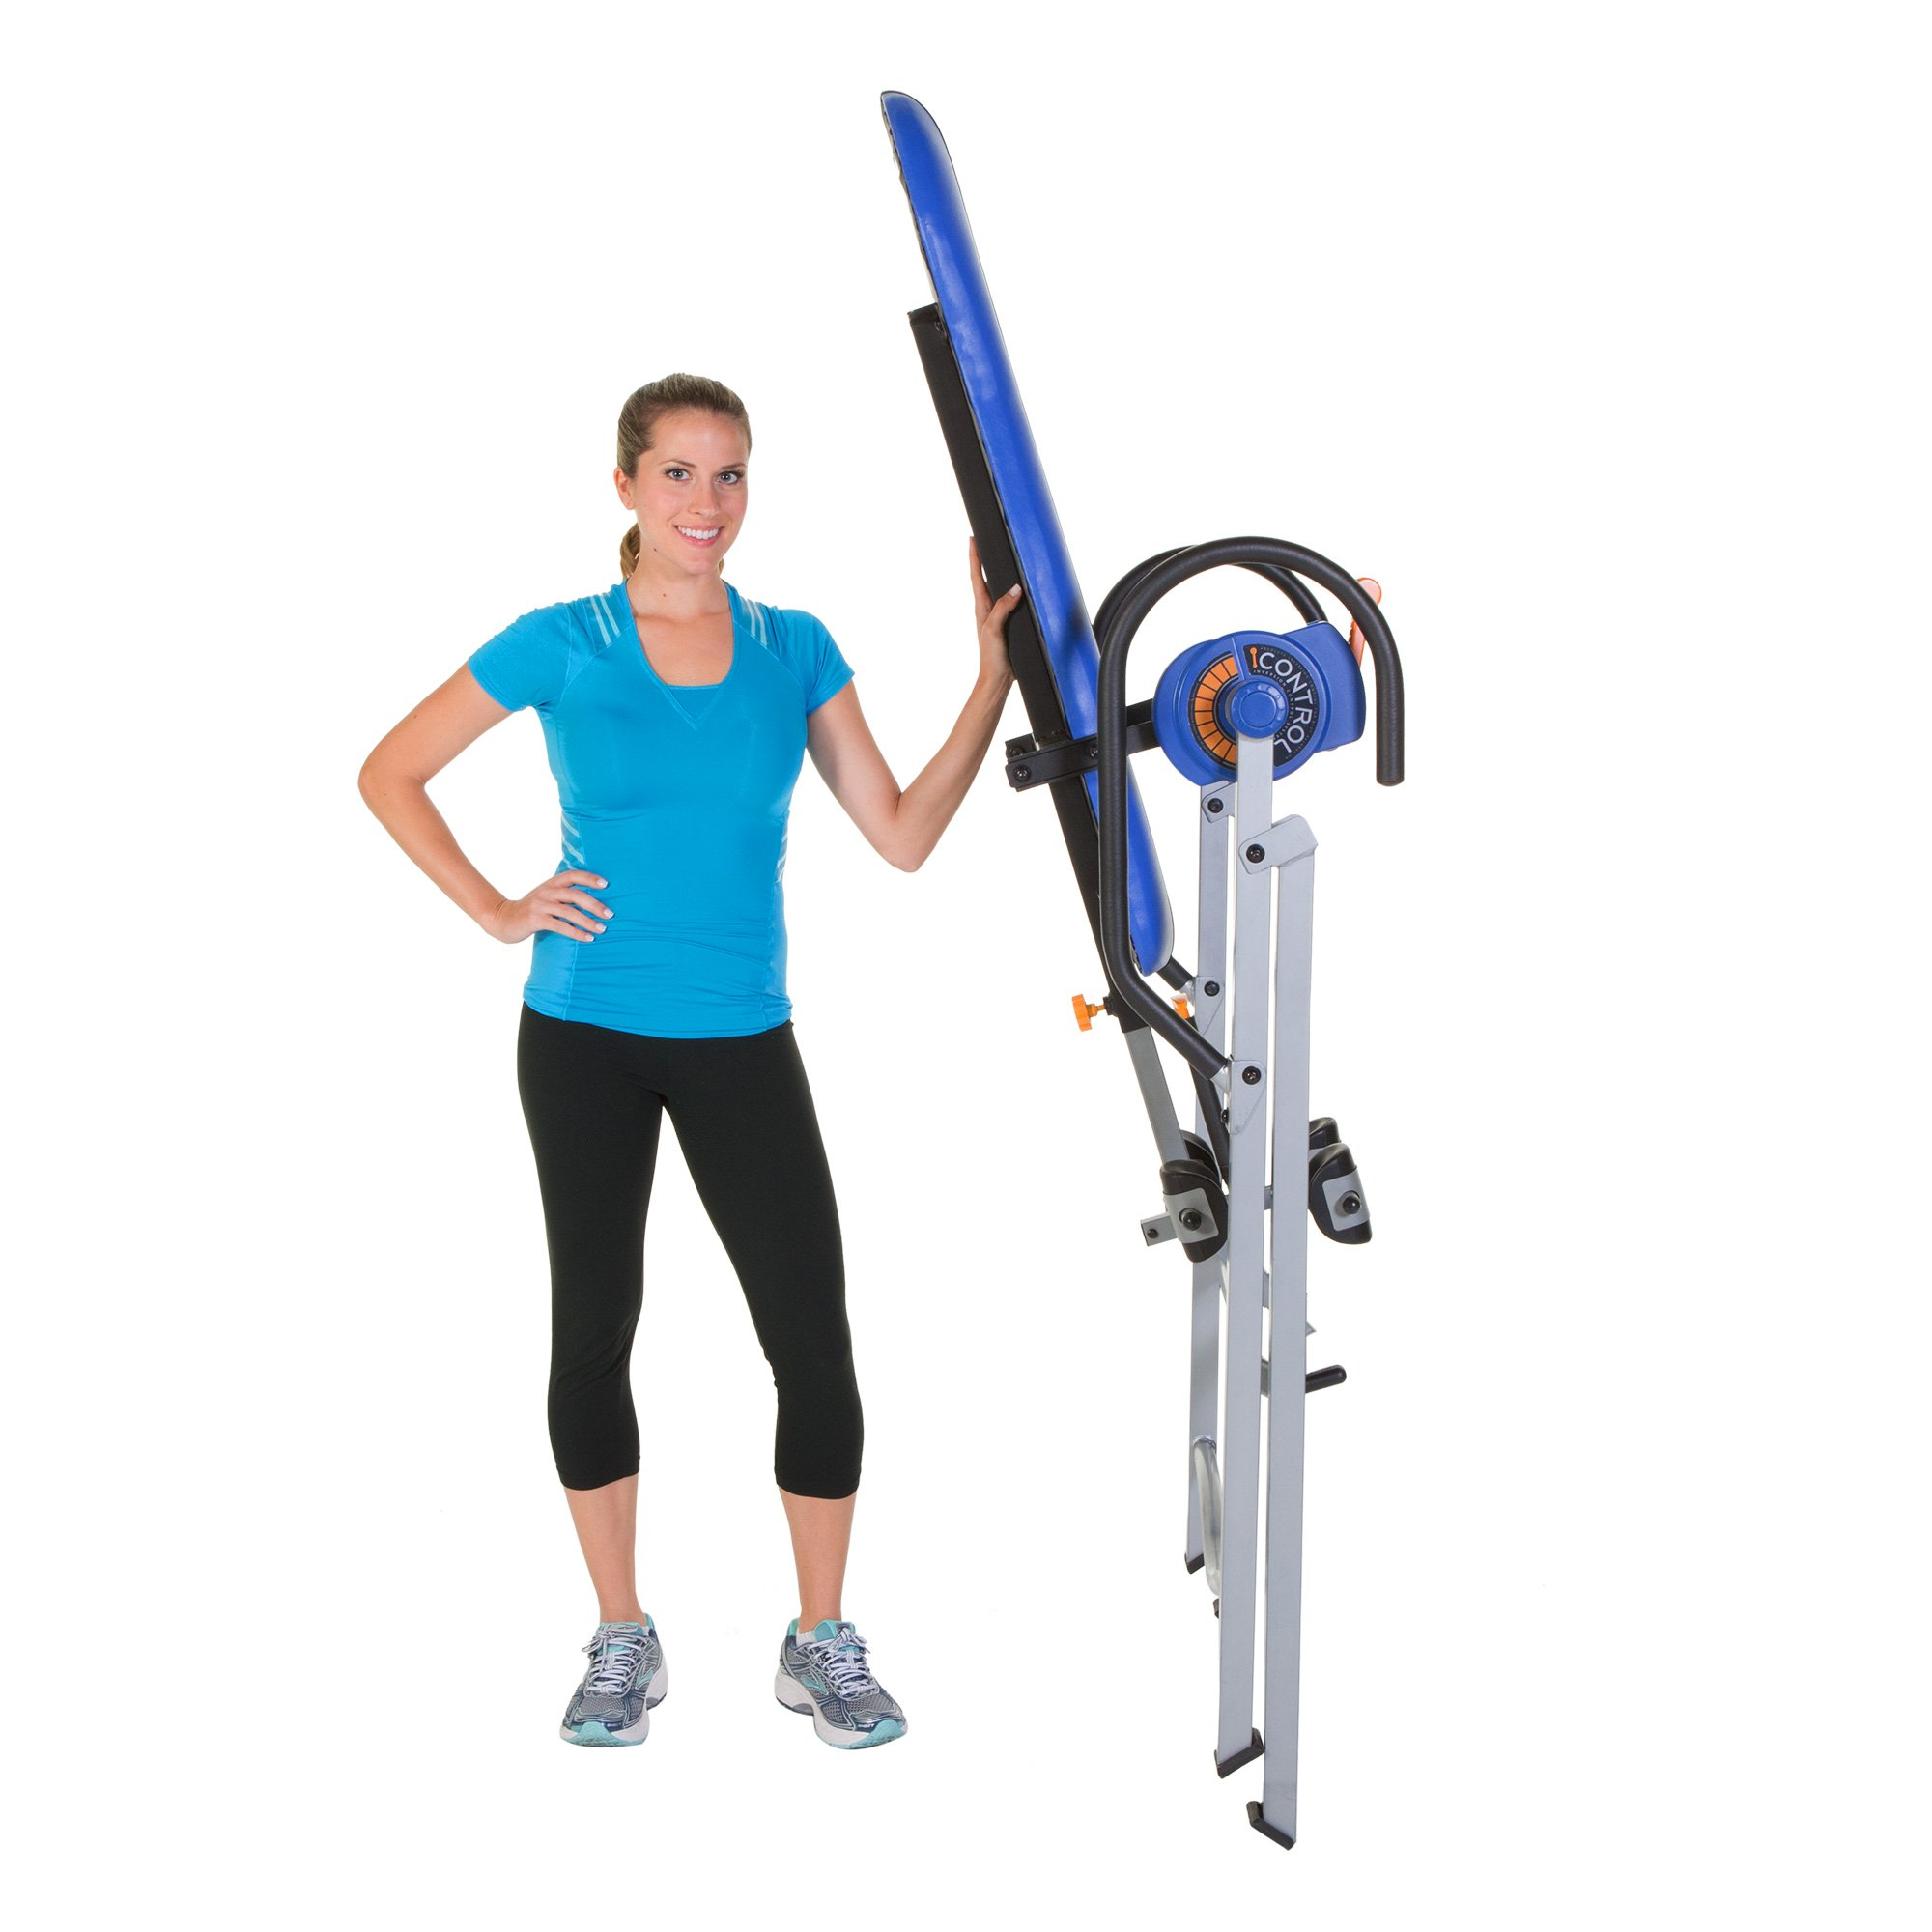 Ironman iControl 400 Disk Brake System Inversion Table by IRONMAN (Image #2)